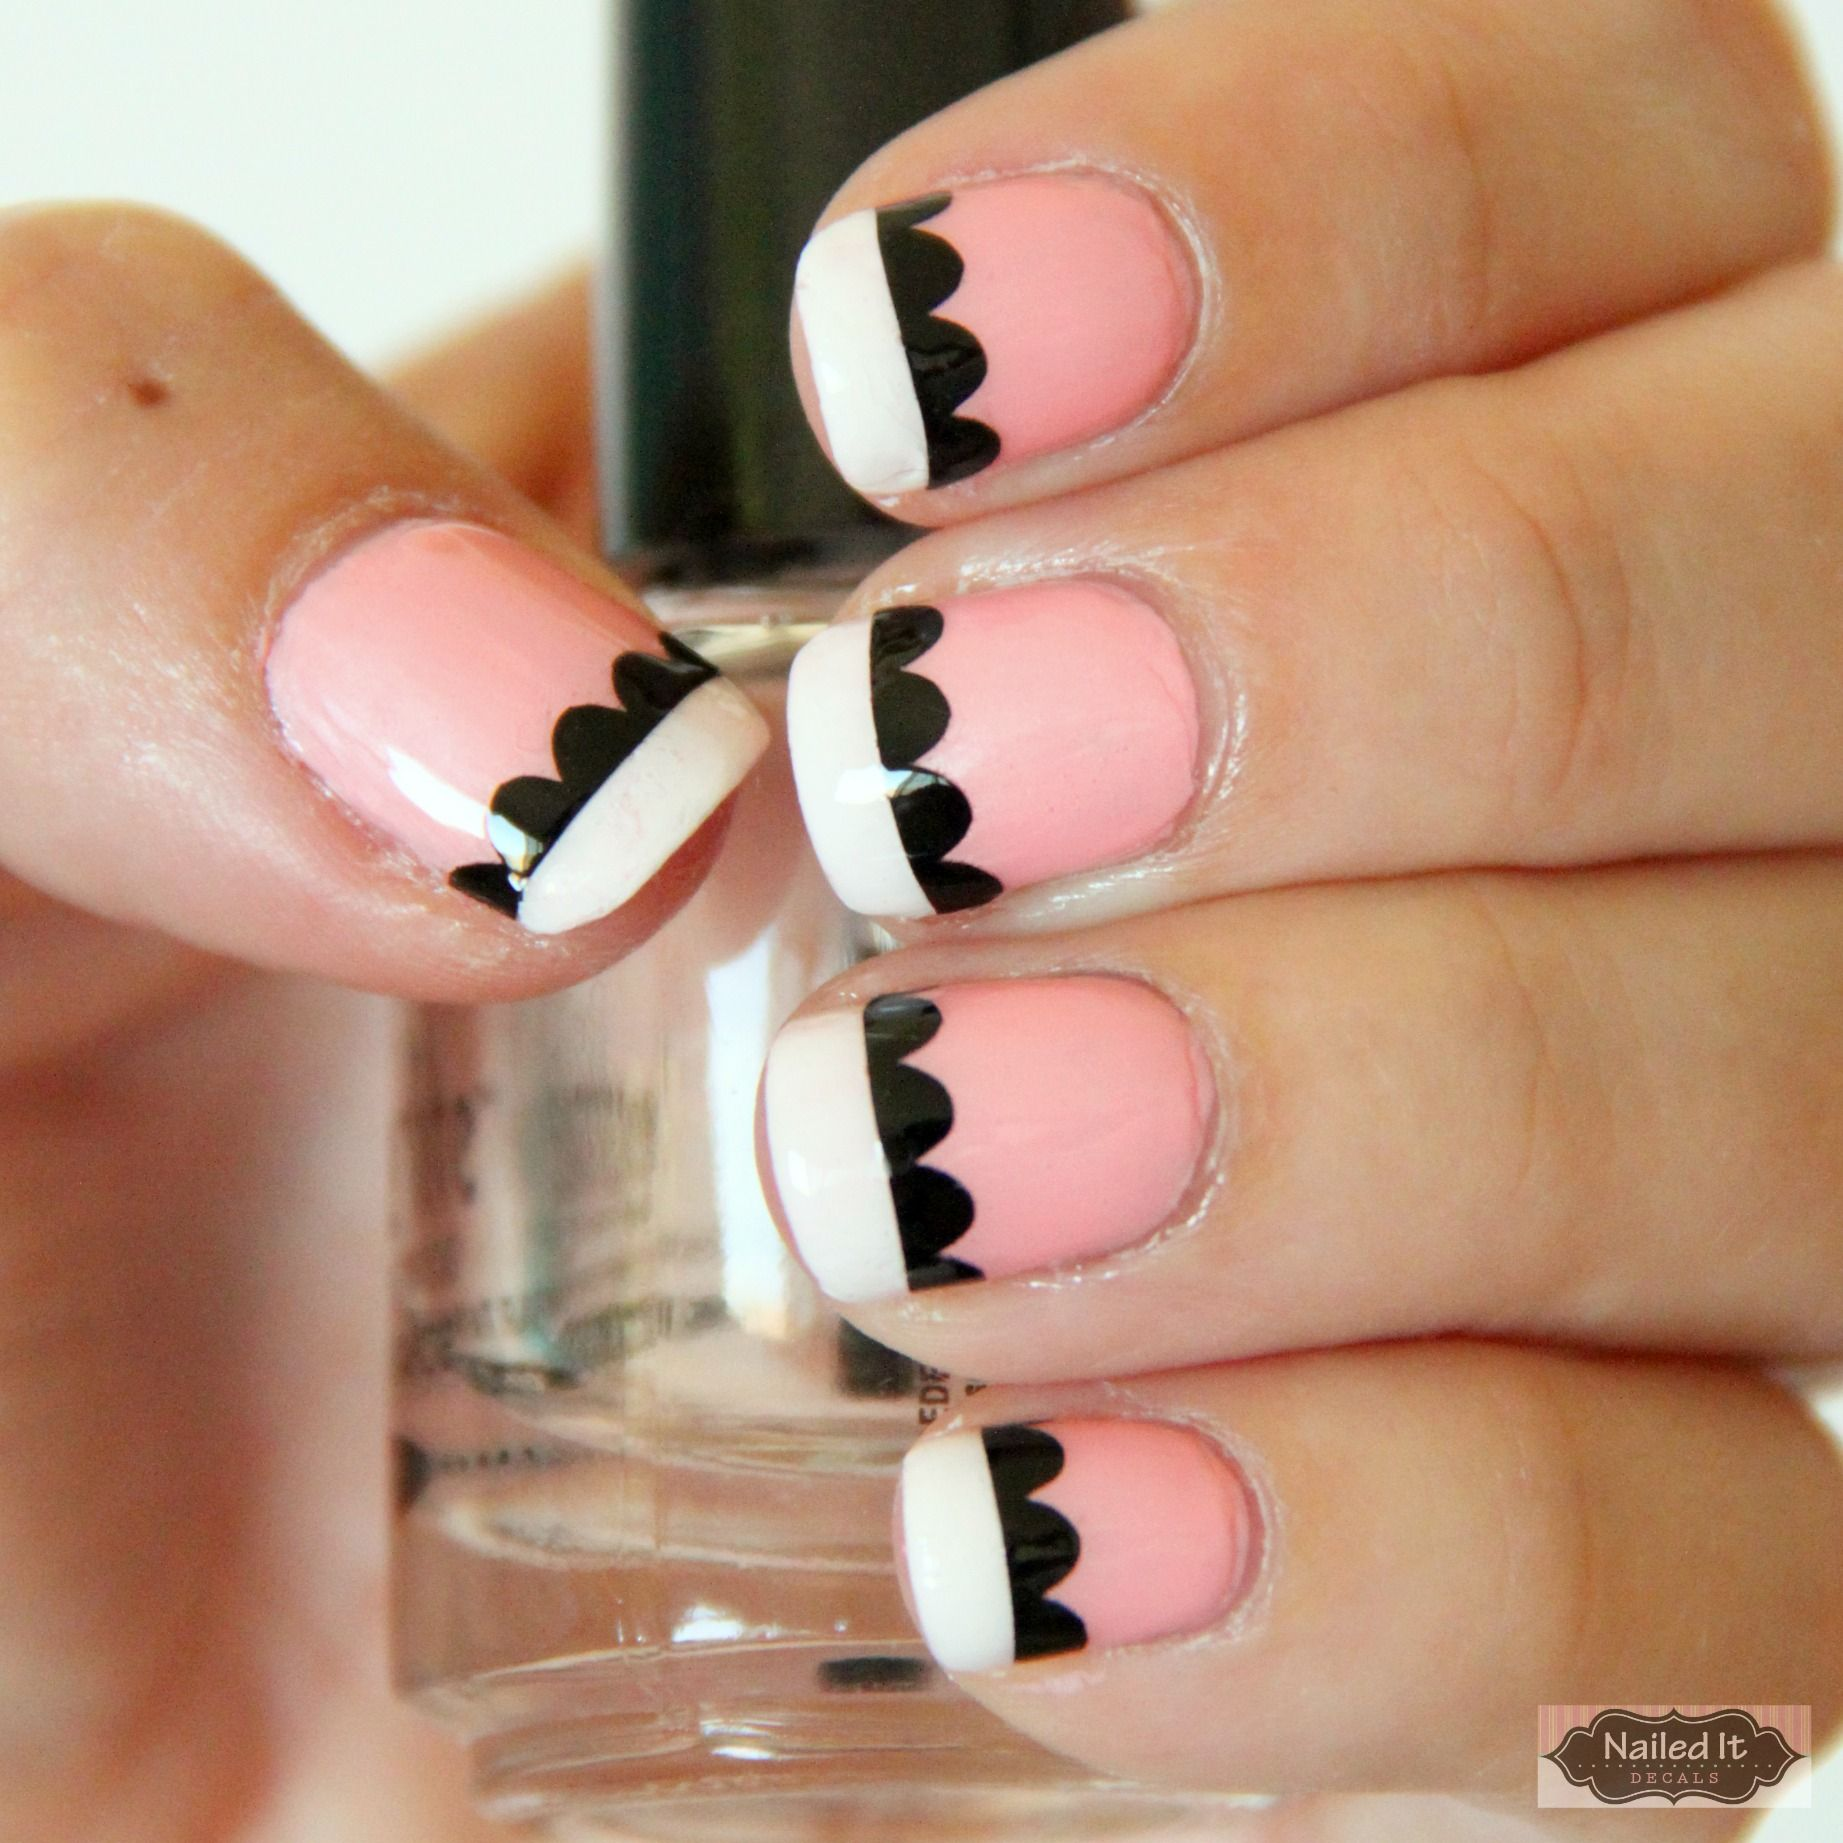 Nailed It Decals: Scallop Line Nail Decals | Nails | Pinterest ...